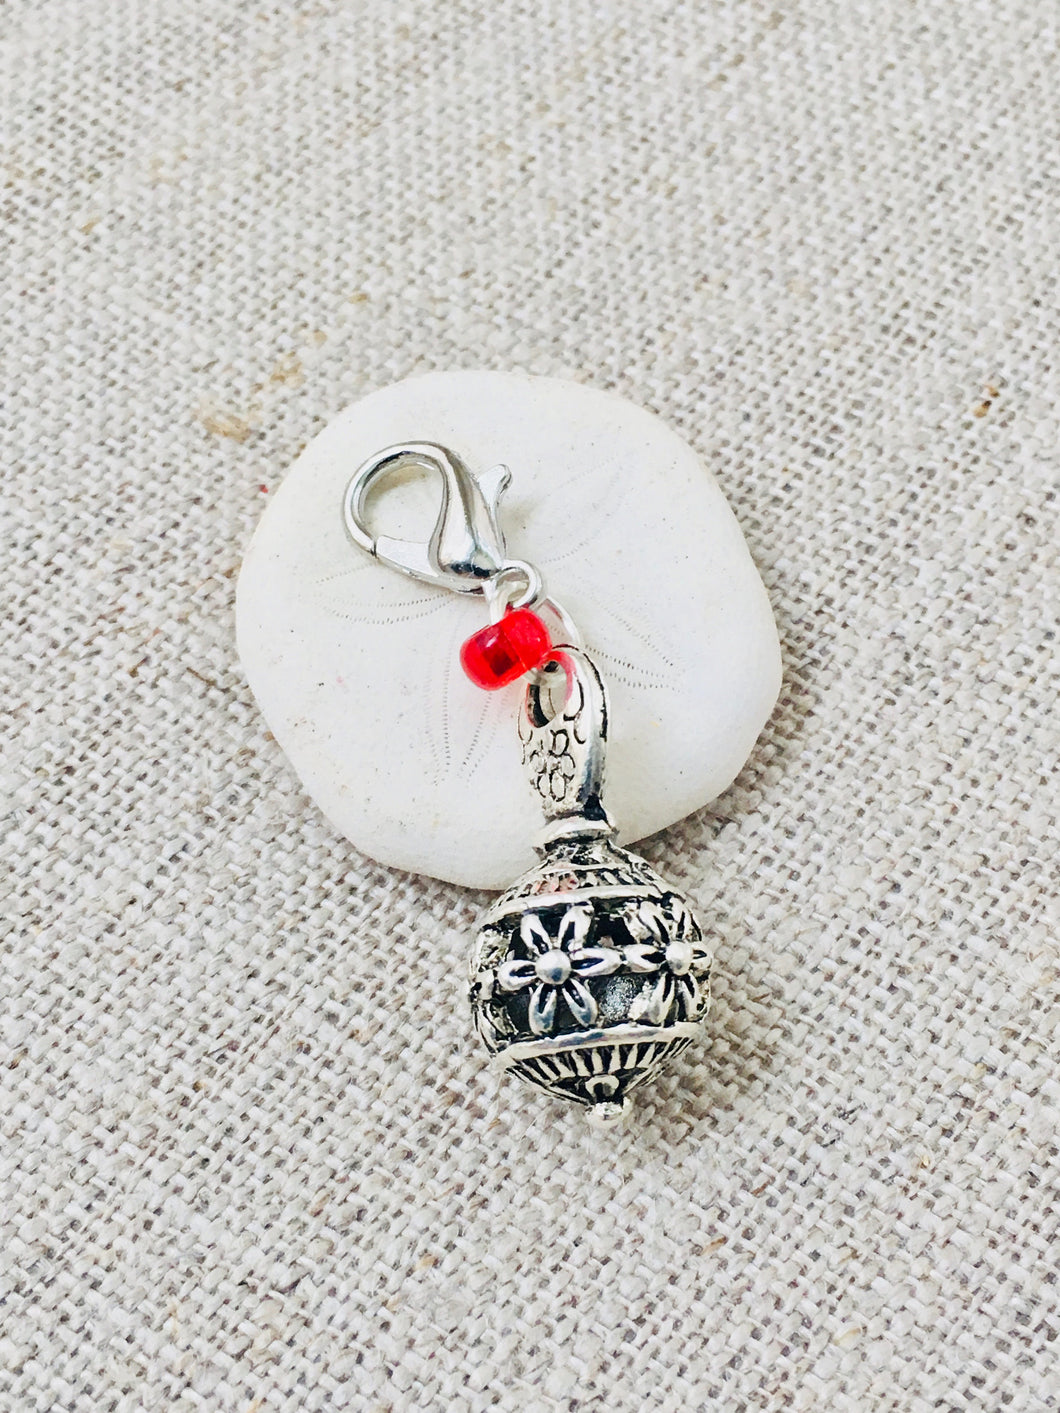 Tibetan silver ball stitch marker charm with red beaded detail and lobster claw closure